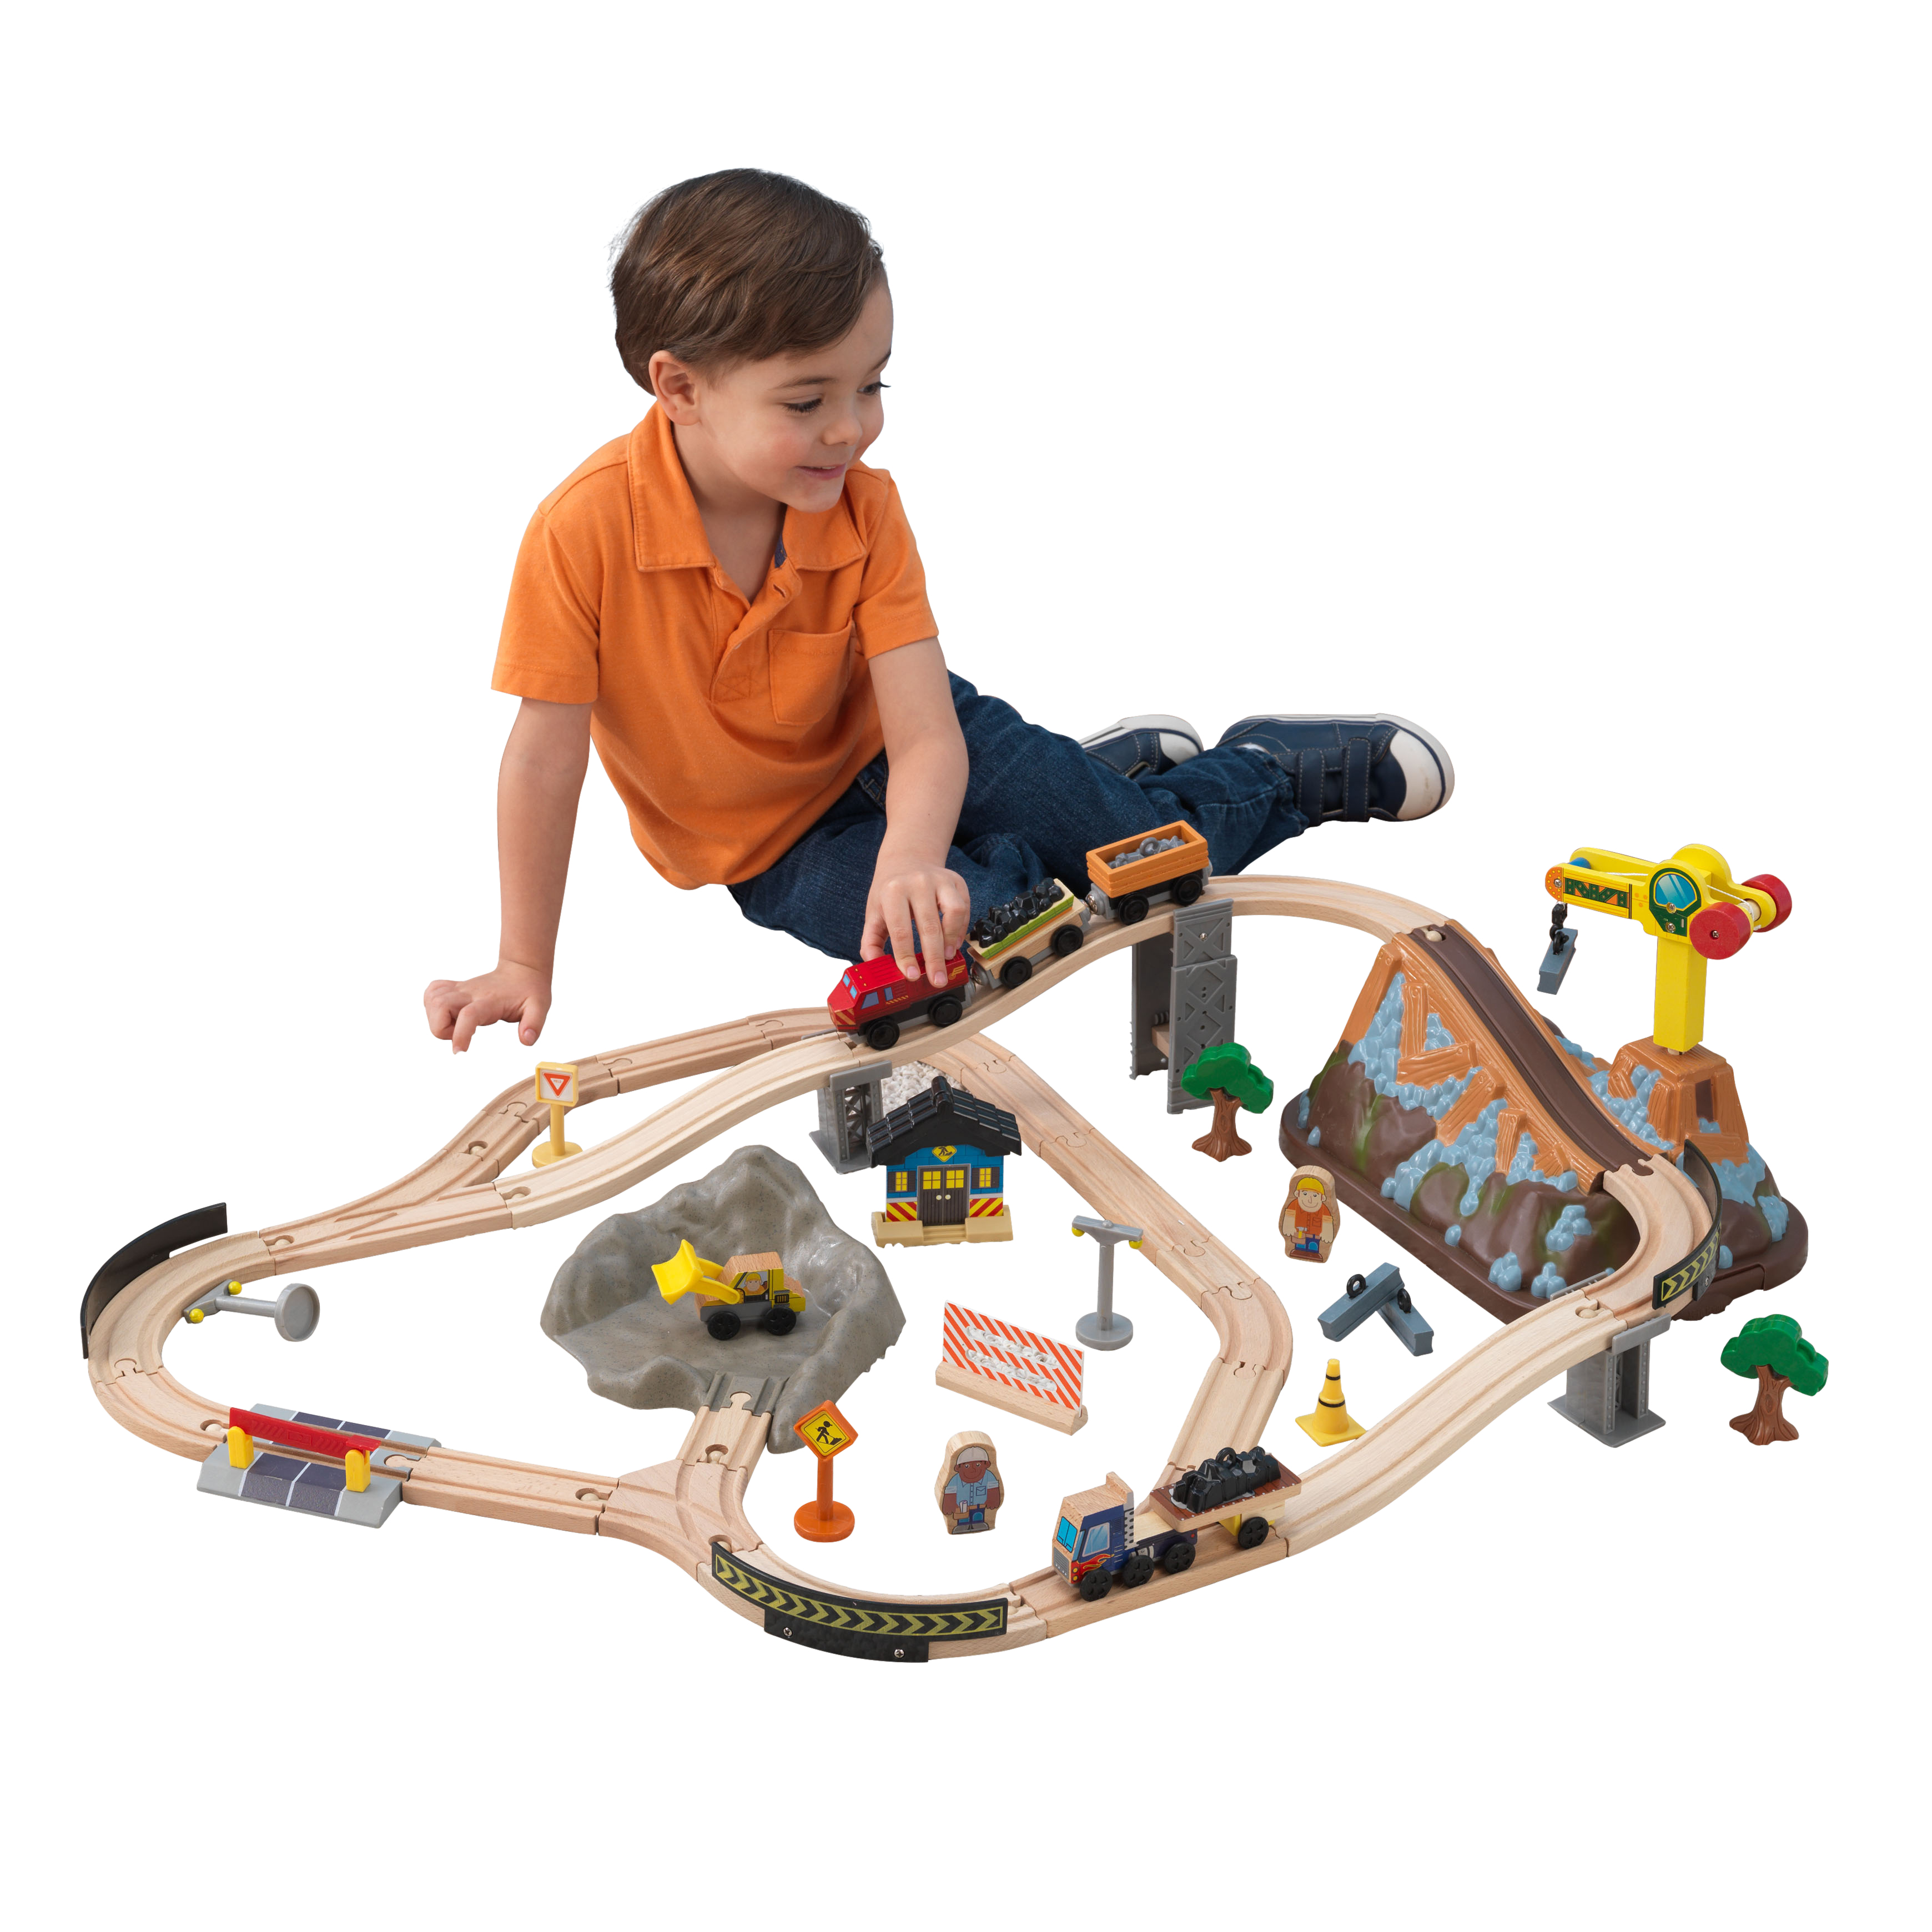 KidKraft Bucket Top Construction Train Set with 61 accessories included